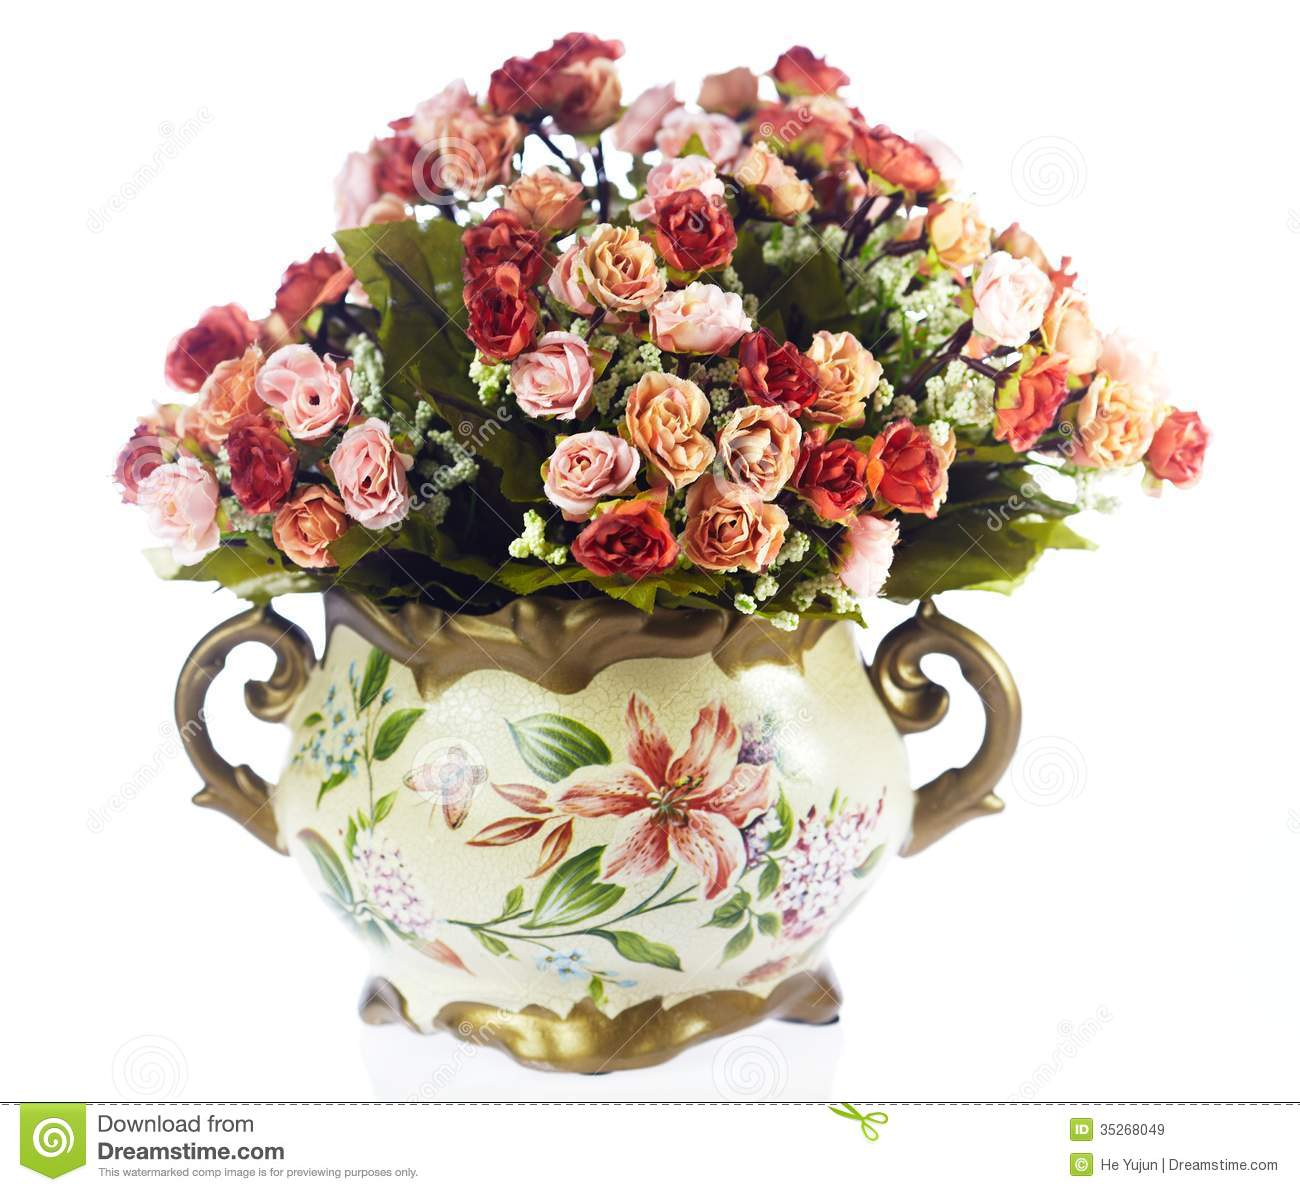 215 & Vases with flowers stock image. Image of arrangement - 35267999